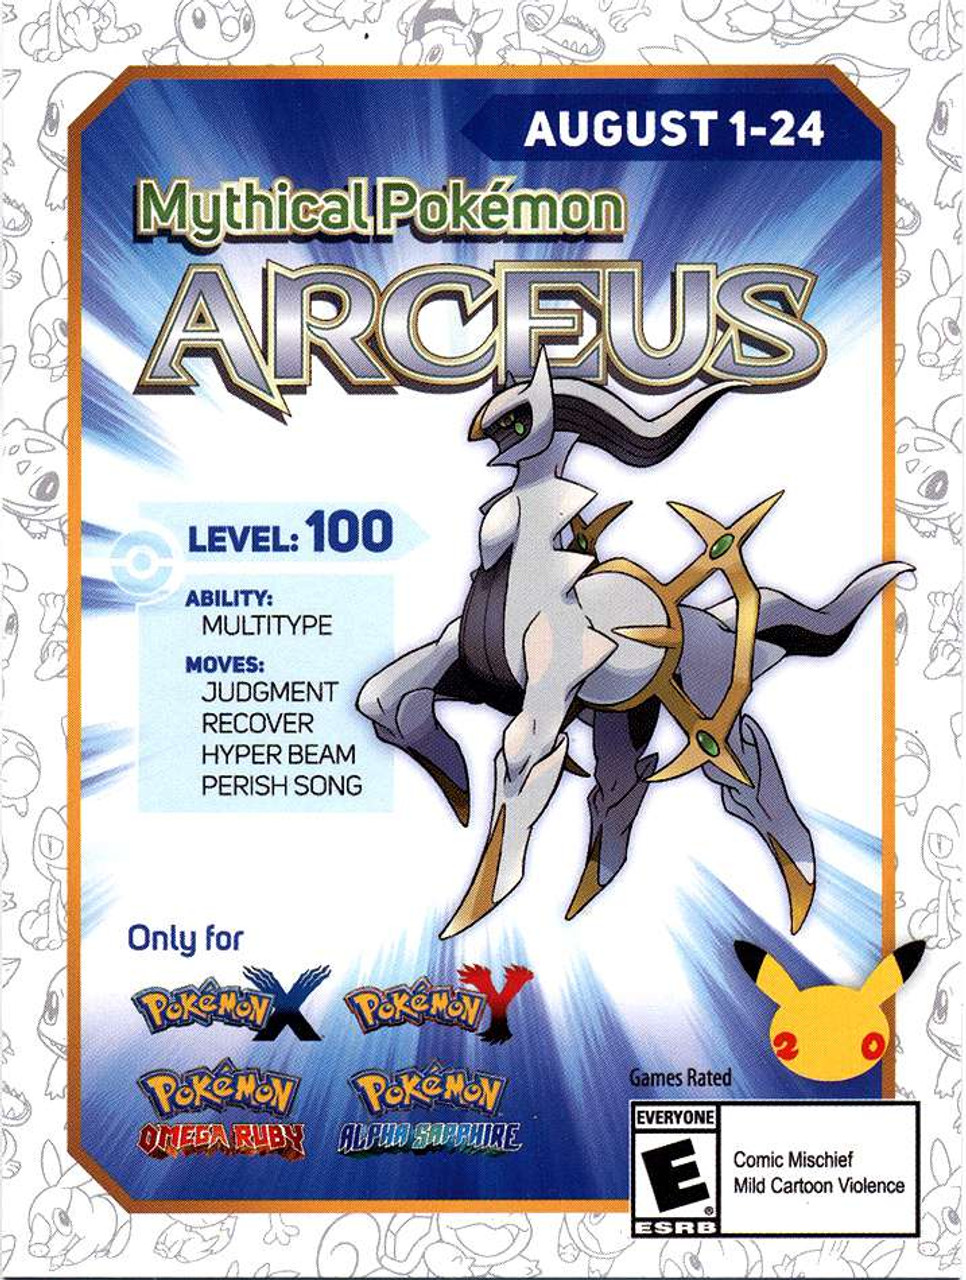 Pokemon X Y 3ds Mythical Arceus Code Card